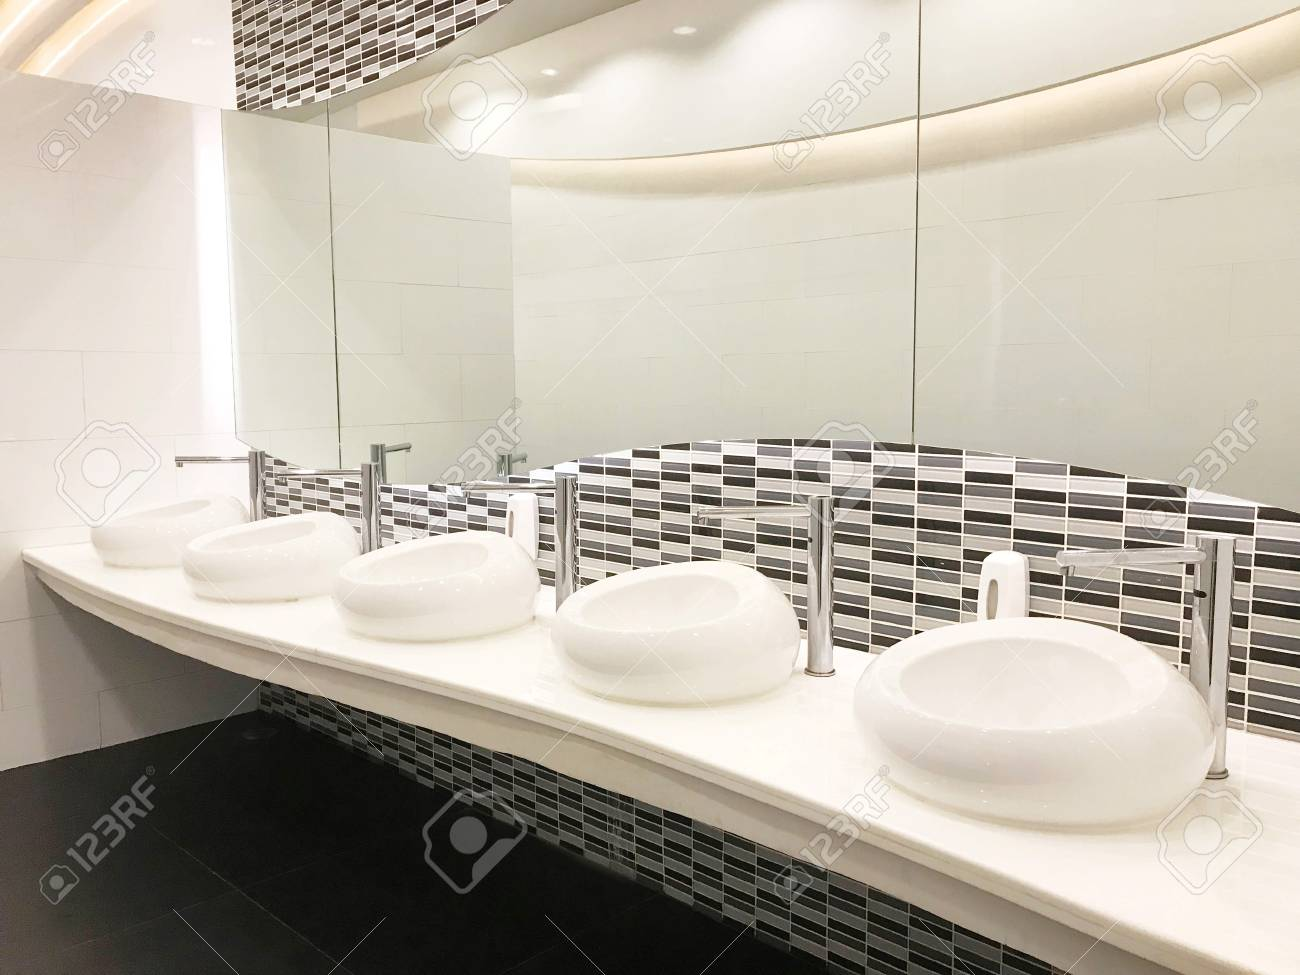 Row Of Modern White Ceramic Wash Basin In Public Toilet Or ...